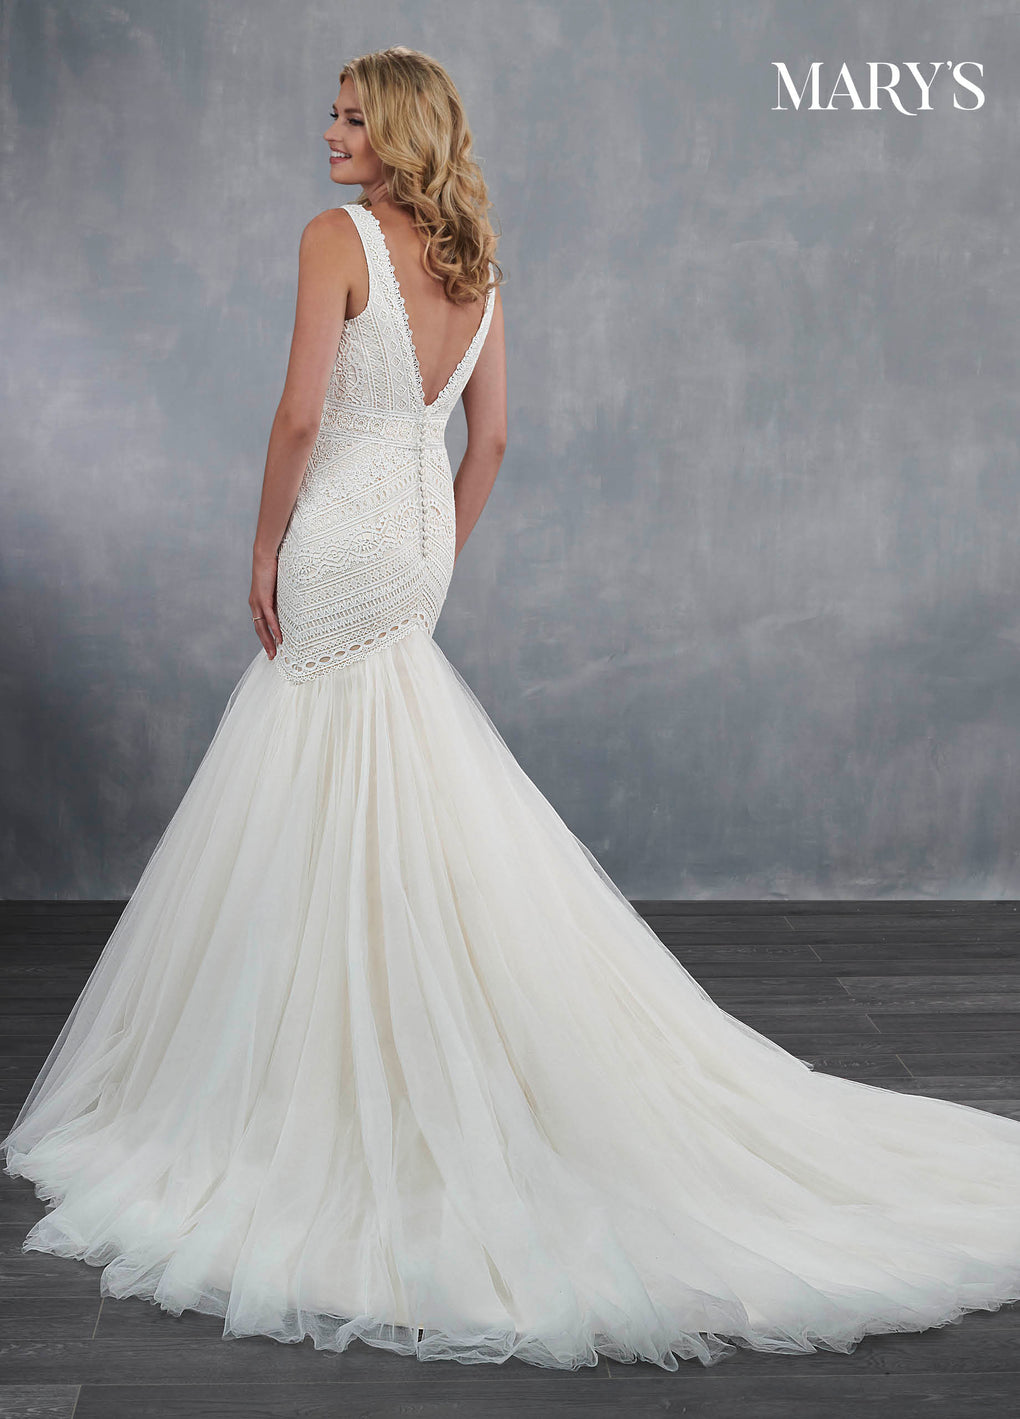 Bridal Wedding Dresses in Ivory/Champagne, Ivory, or White Color